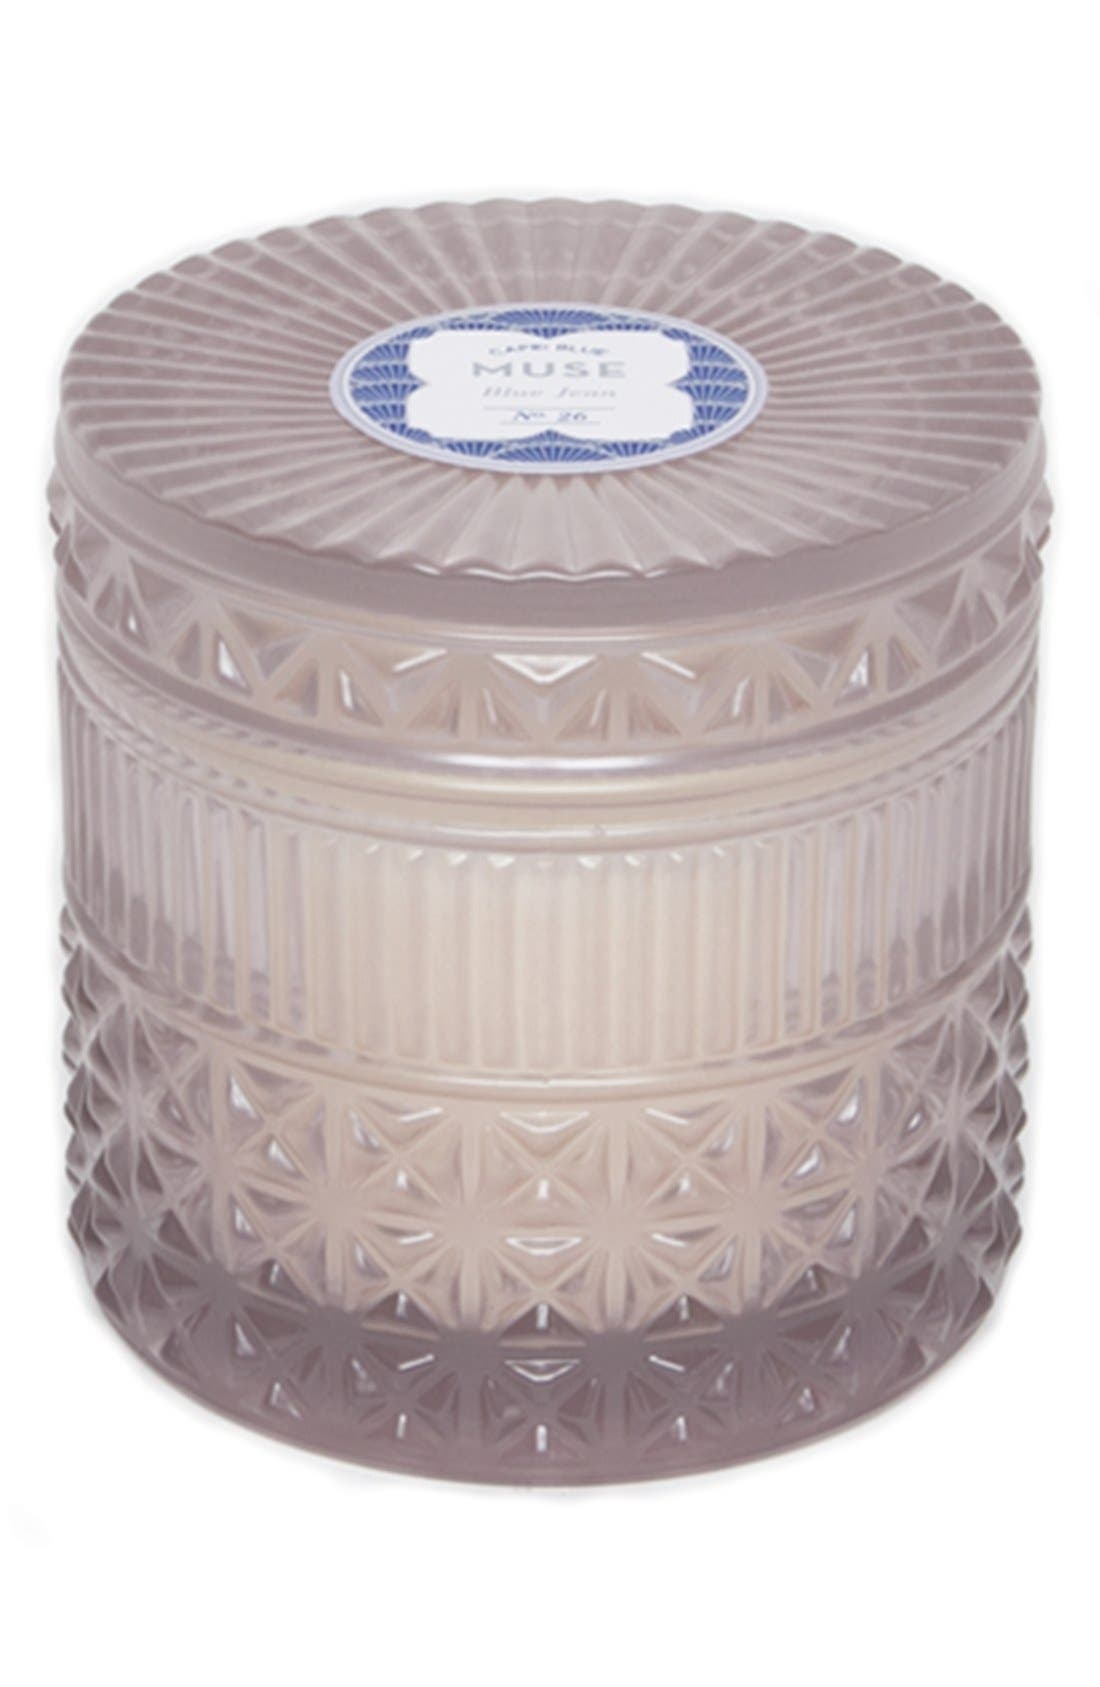 Capri Blue 'Muse Collection' Candle